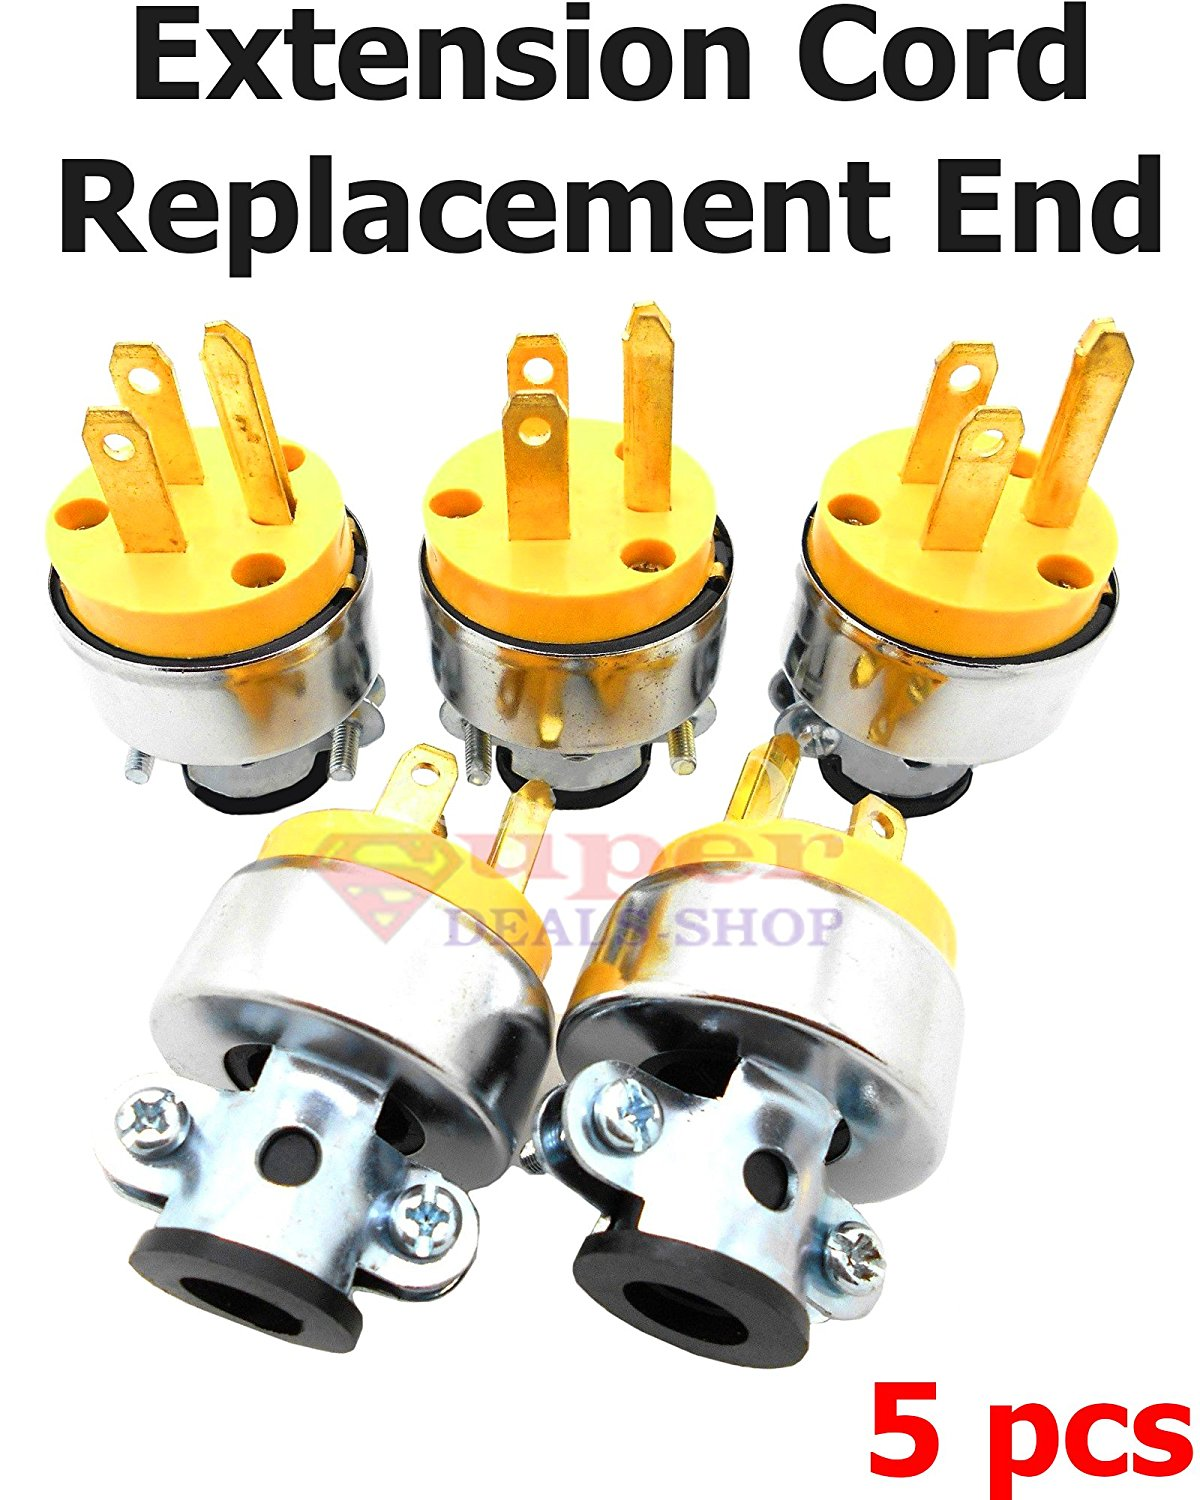 Cheap Electrical Cord Plug Replacement Find Wiring A Get Quotations 5 Pieces Male Extension End Wire Repair